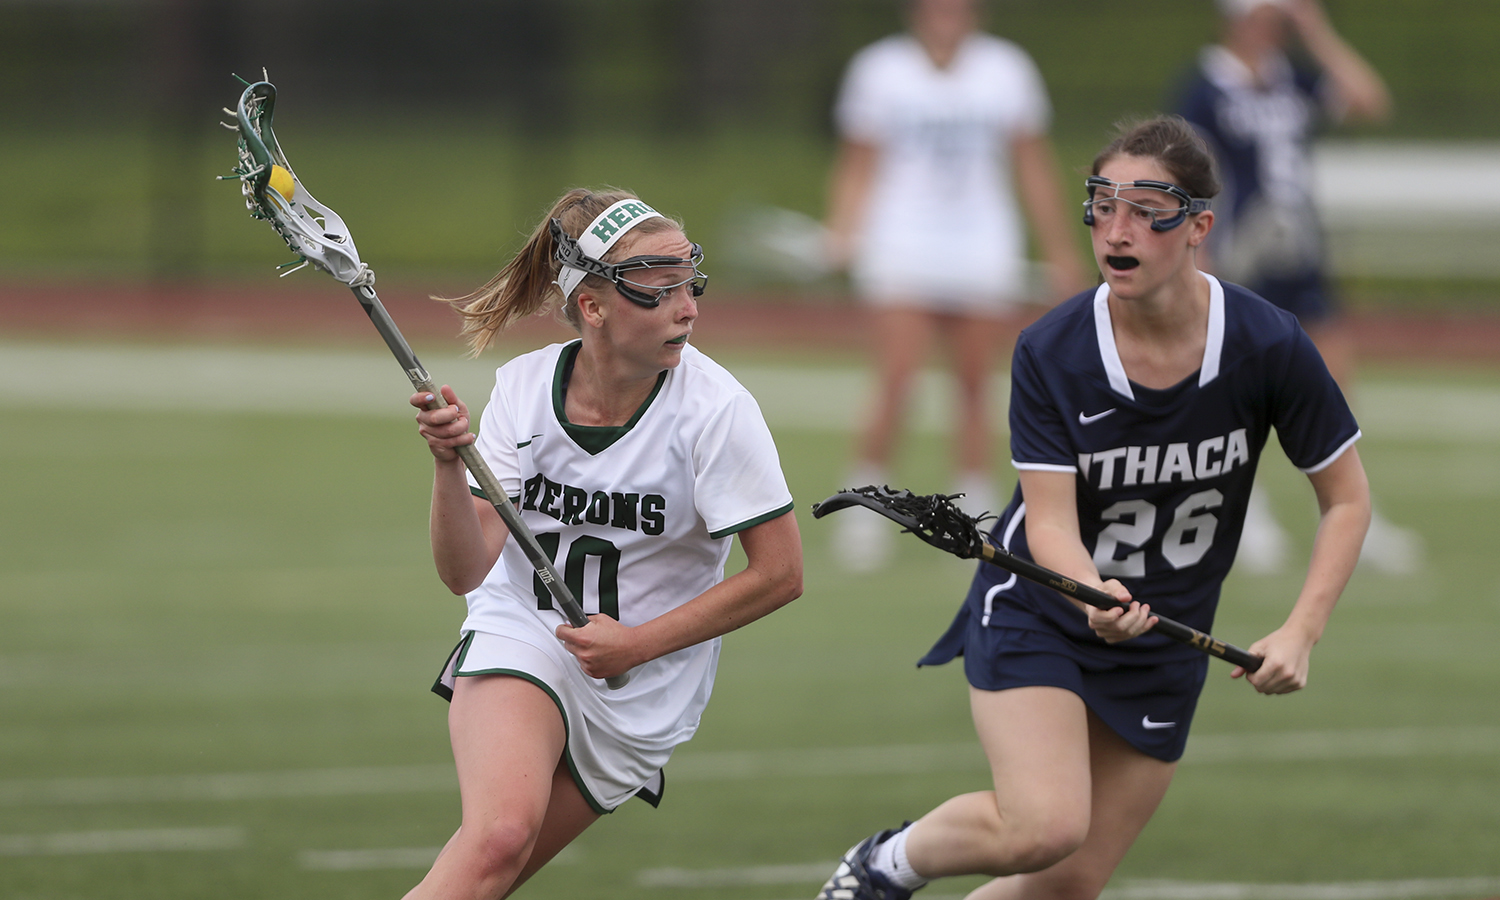 Kelsi Carr '18 works around a defender during William Smith's 15-10 win over Ithaca College during the 2018 Liberty League Women's Lacrosse Championship.